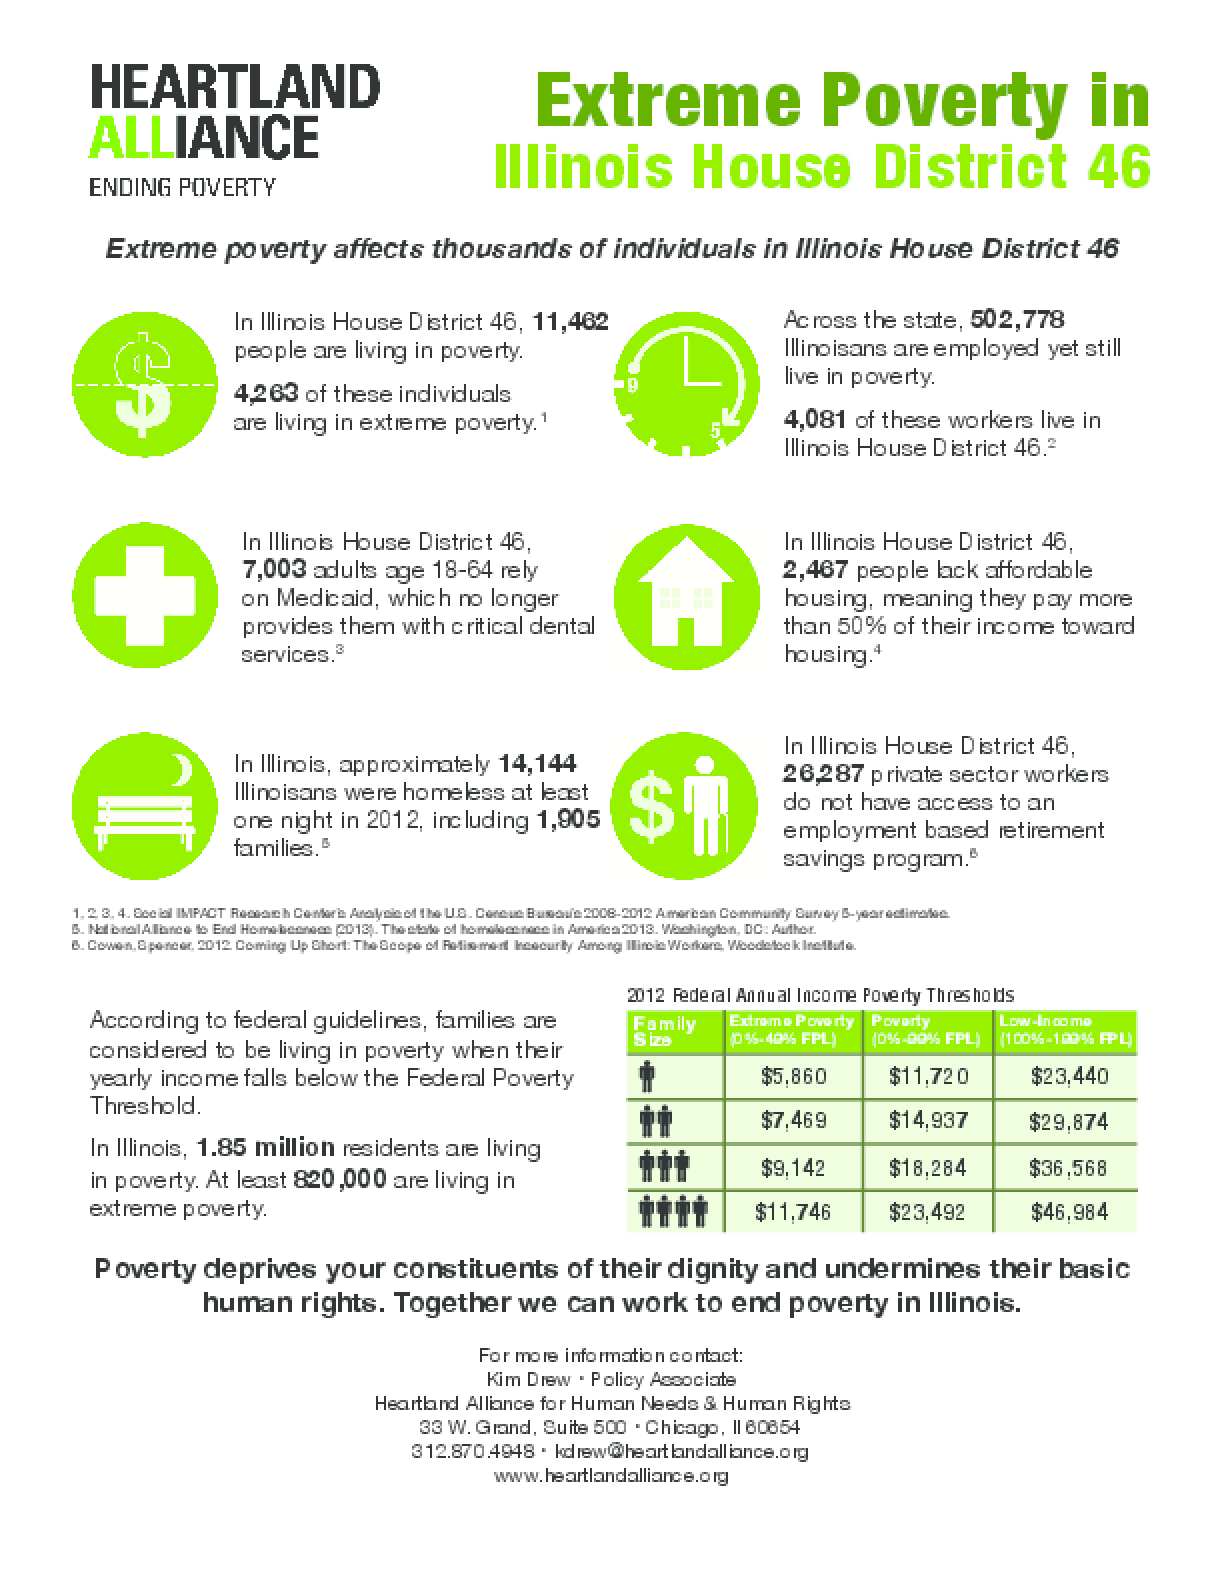 Poverty Fact Sheets for Illinois House District 46